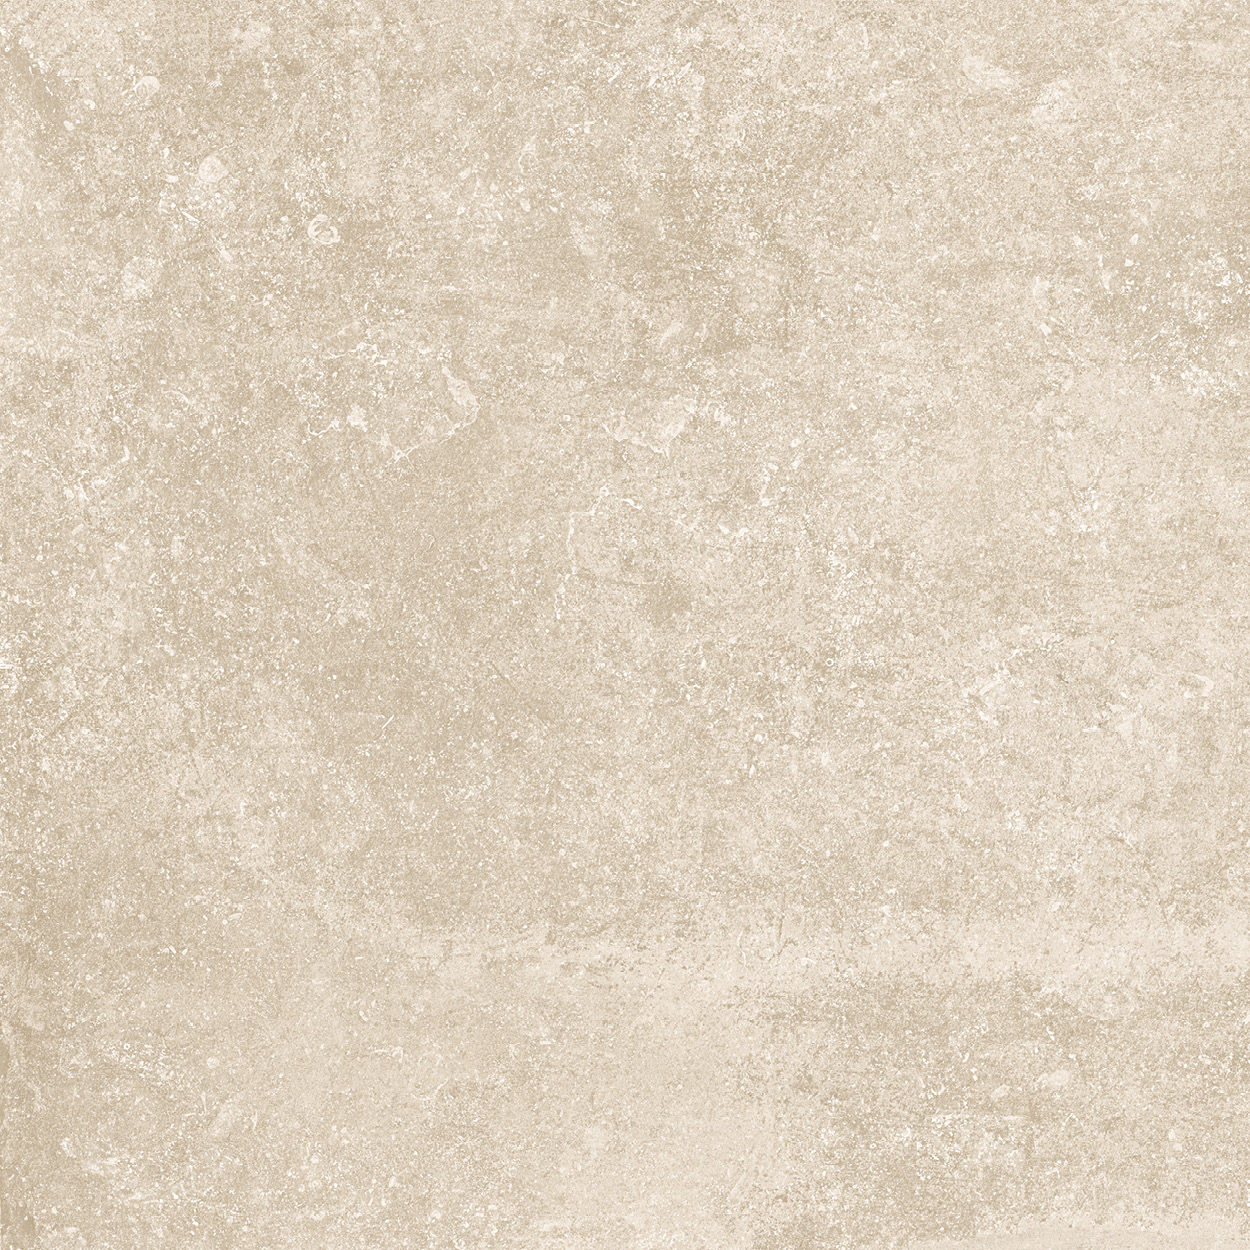 32 X 32 Marwari Clay Rectified Porcelain Tile (SPECIAL ORDER ONLY)